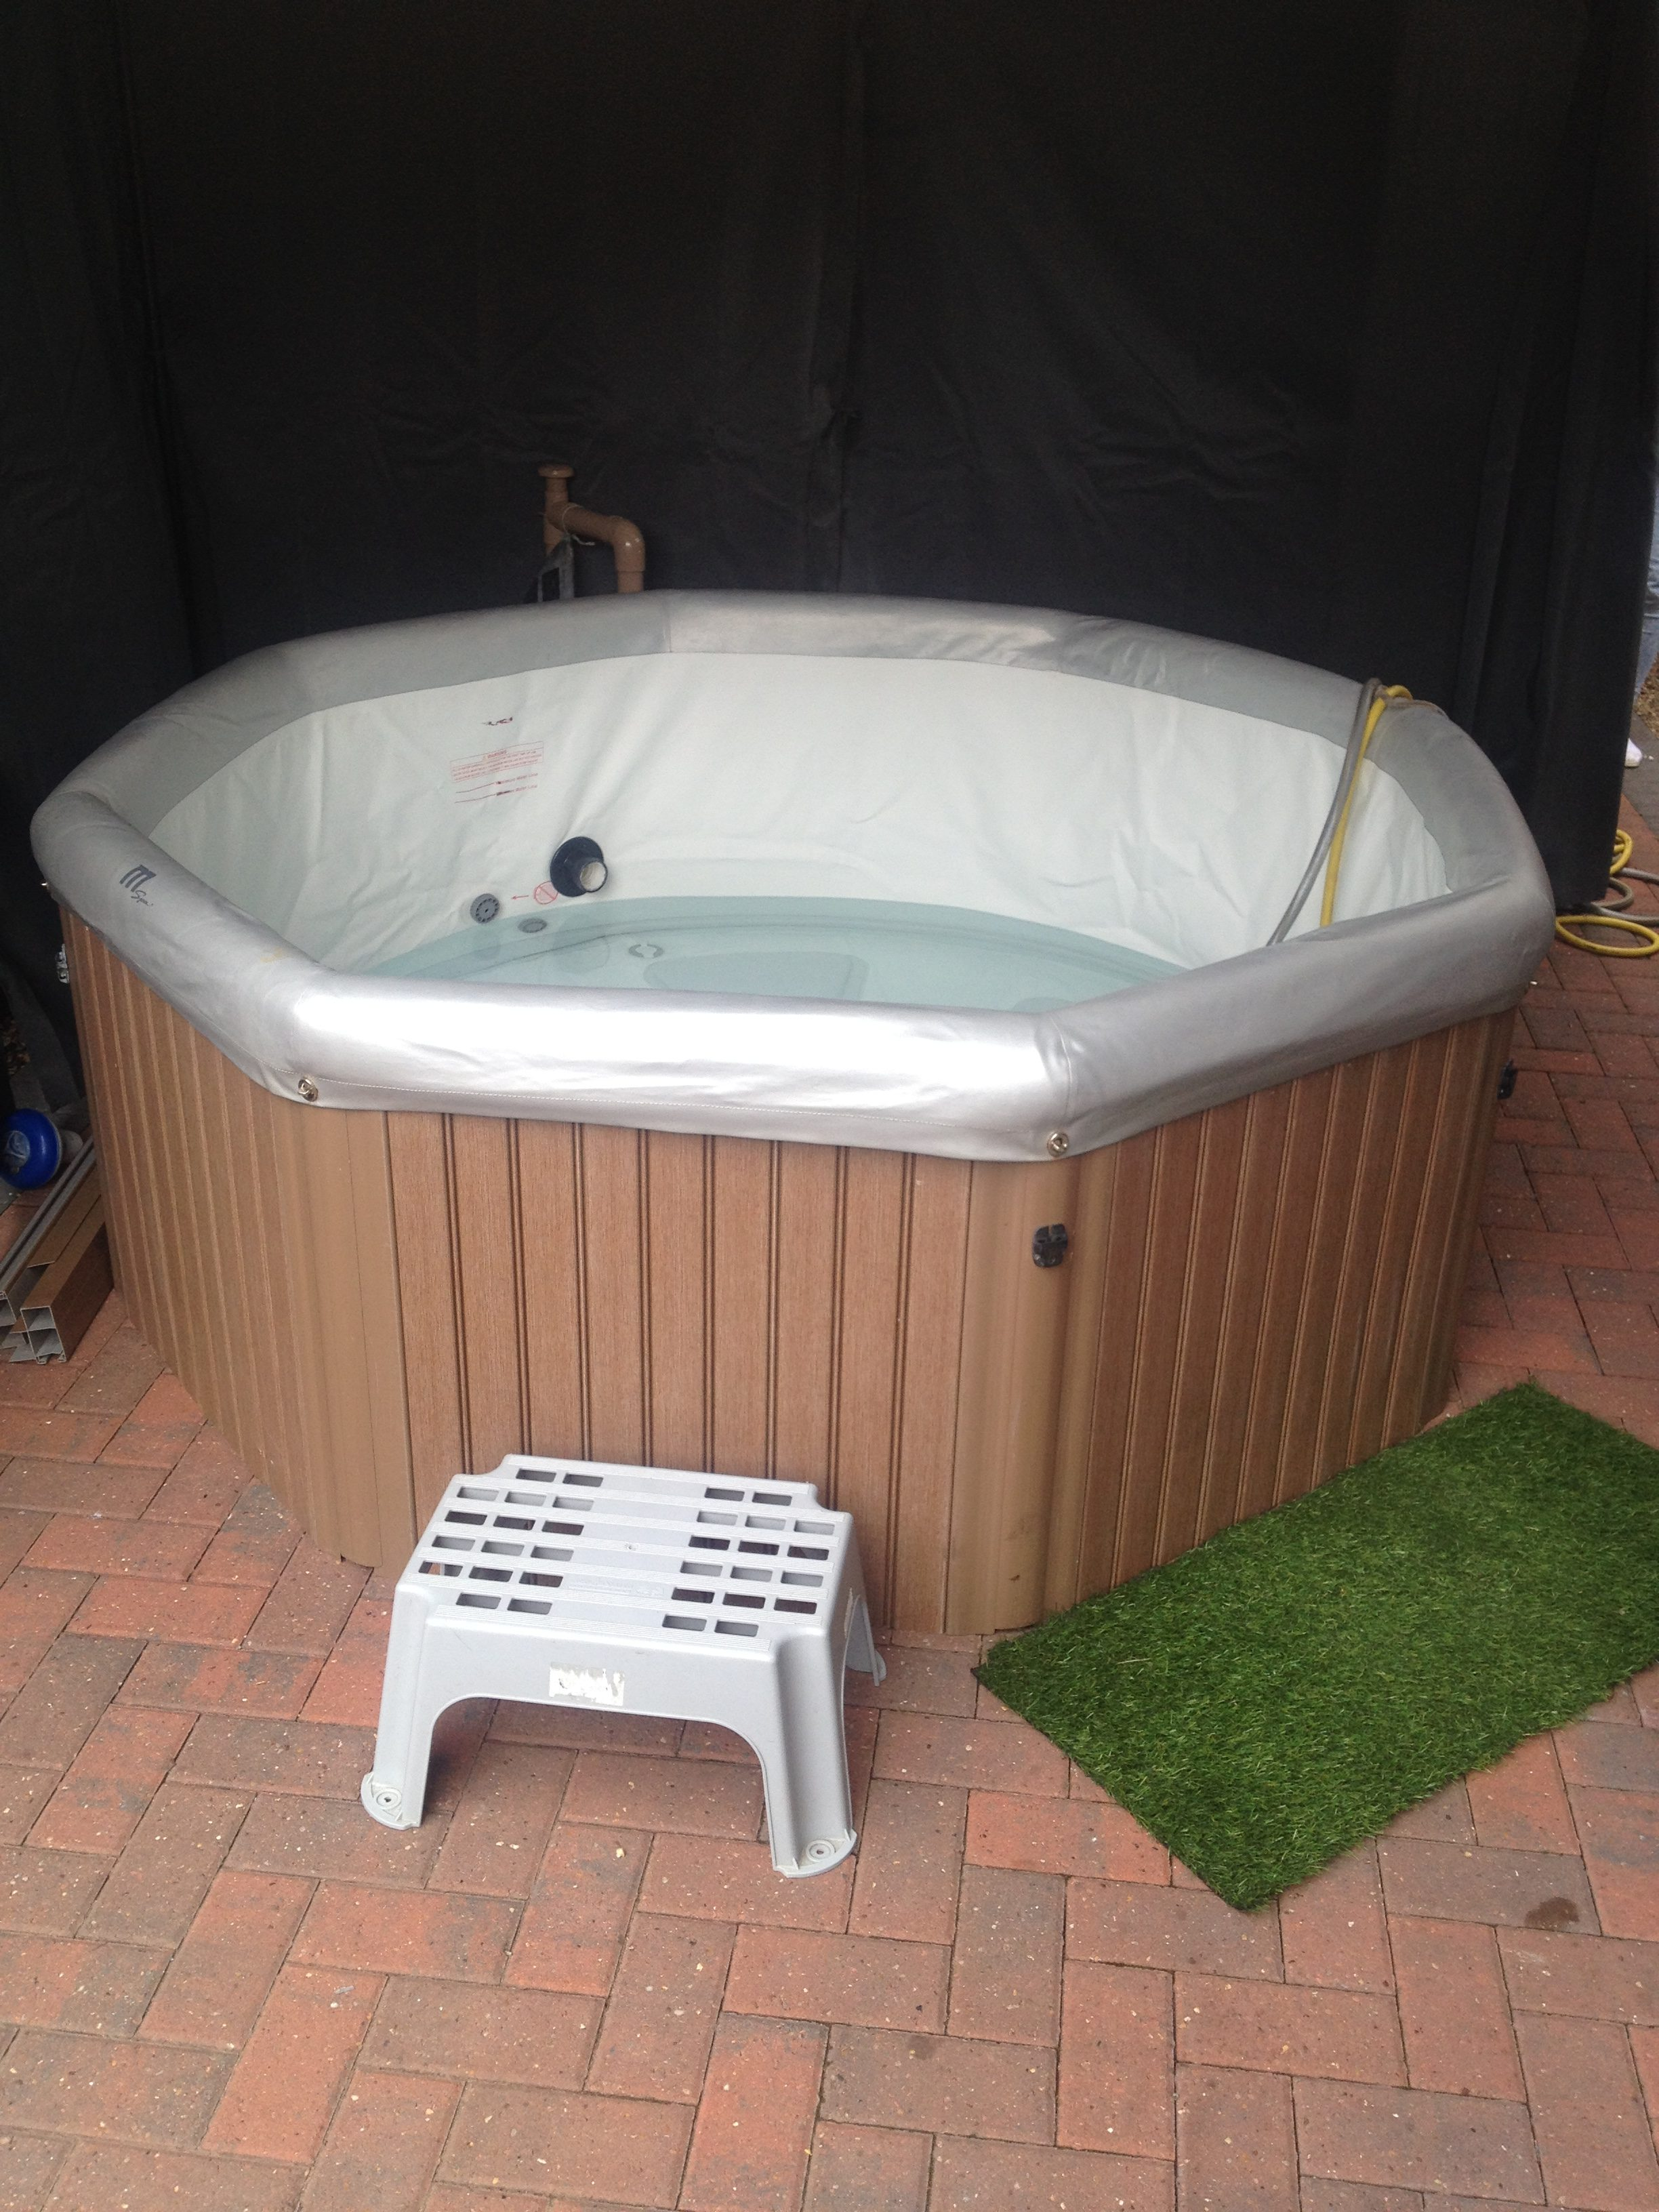 contents cheap with lodges deals cabin night fr avon a tub wood hottubhideaways uk image hot lodge tubs